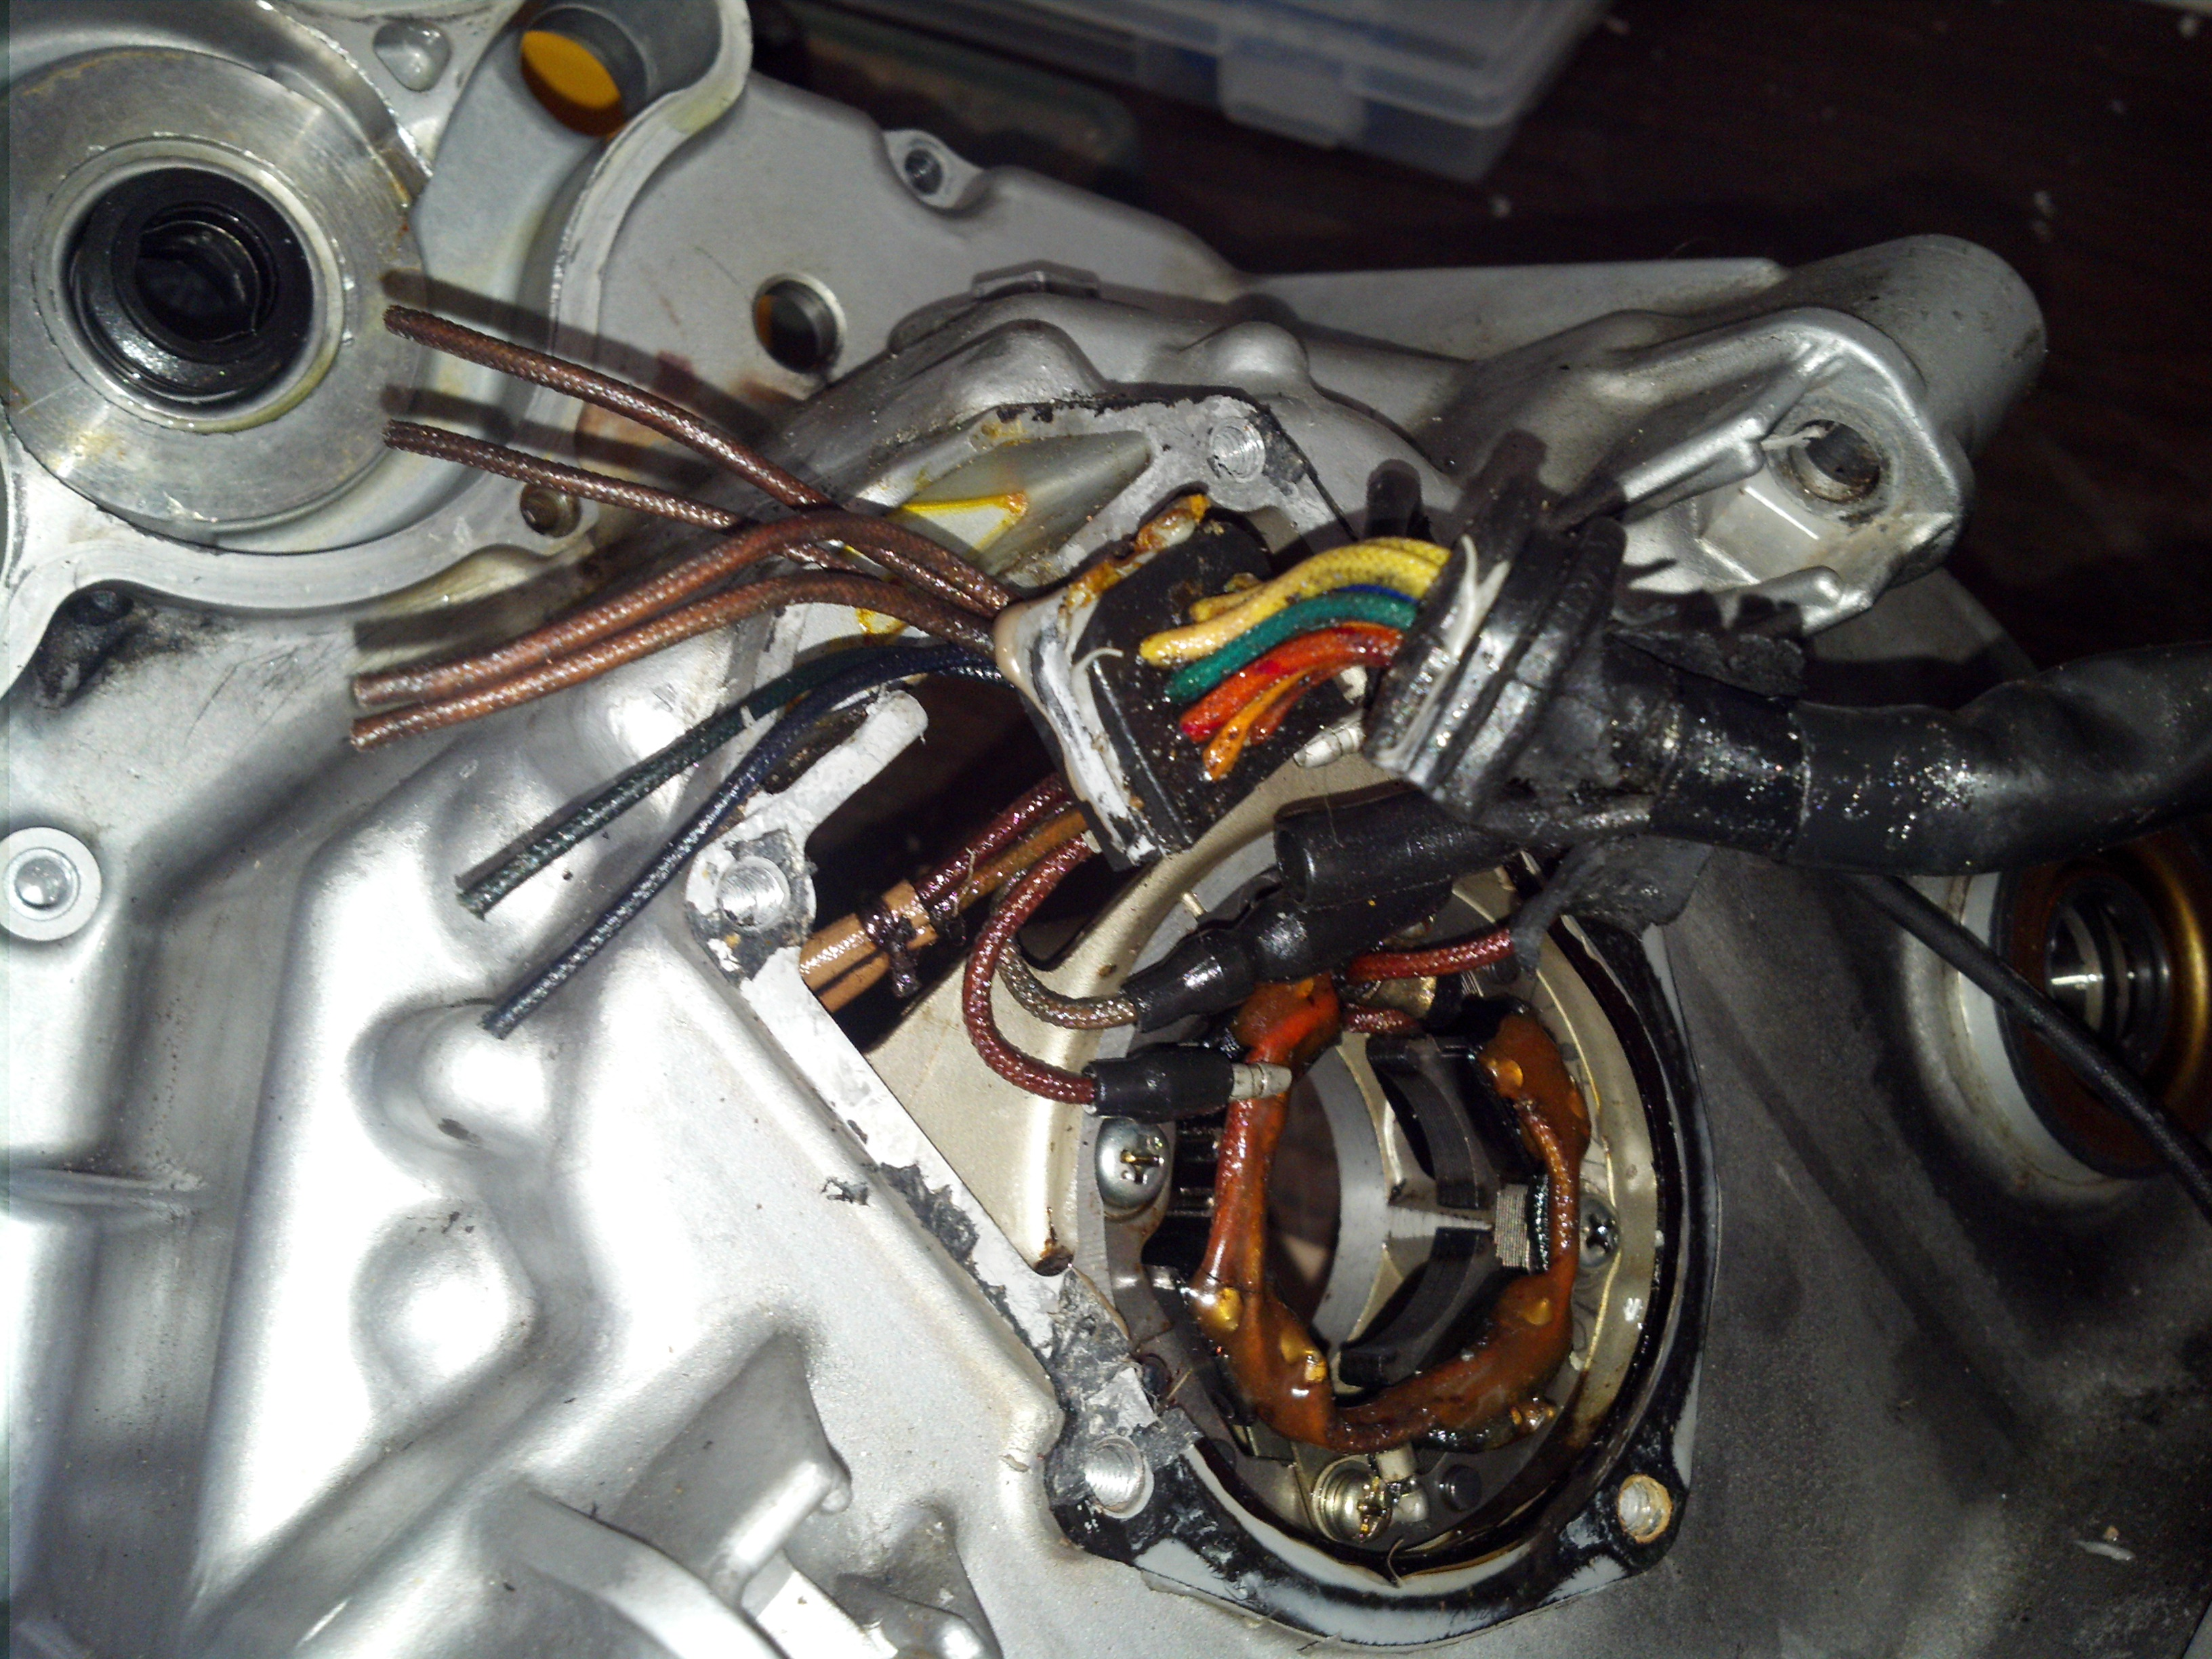 CX500 G47 stator and pulser wiring harness